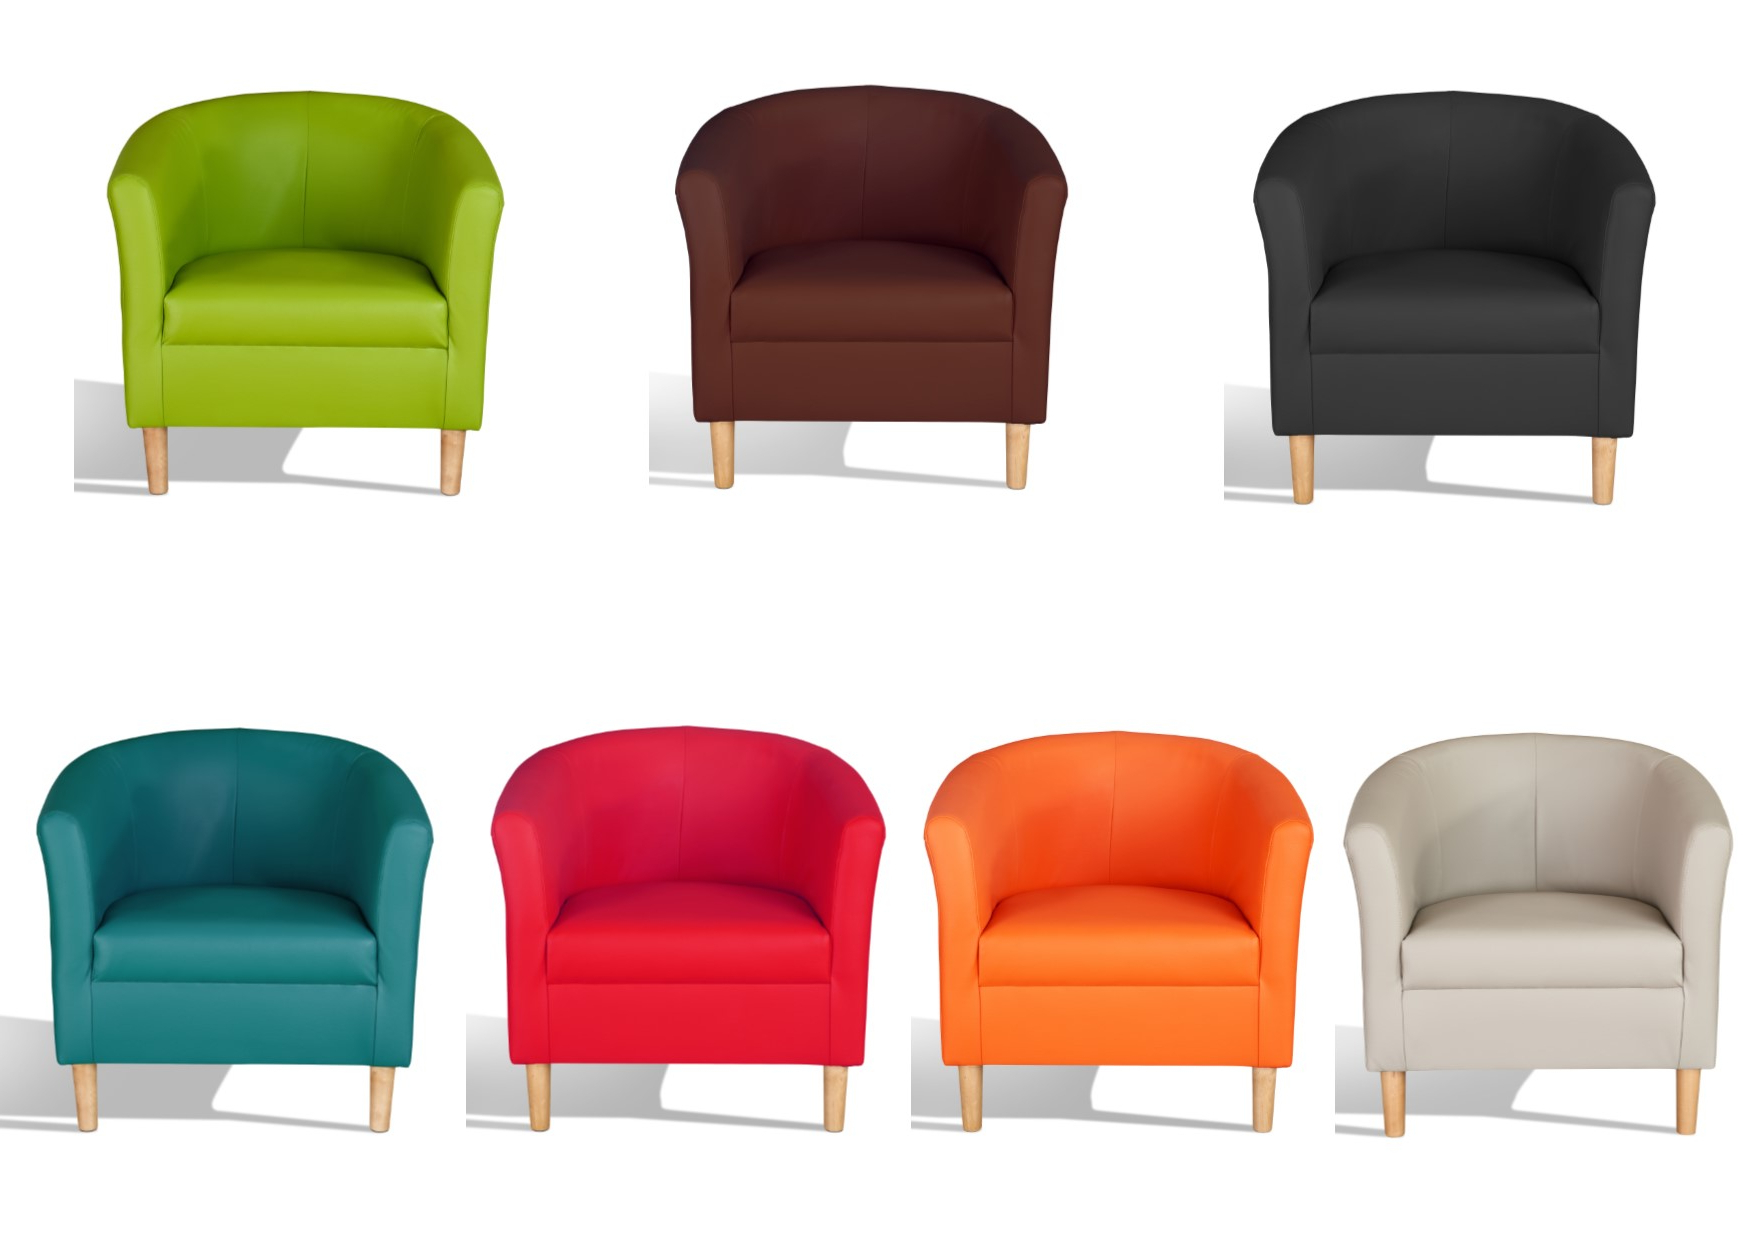 Details About Hamony Faux Leather Tub Chairs – Black, Mocha, Chestnut, Red, Teal, Green For Recent Montenegro Faux Leather Club Chairs (View 5 of 20)